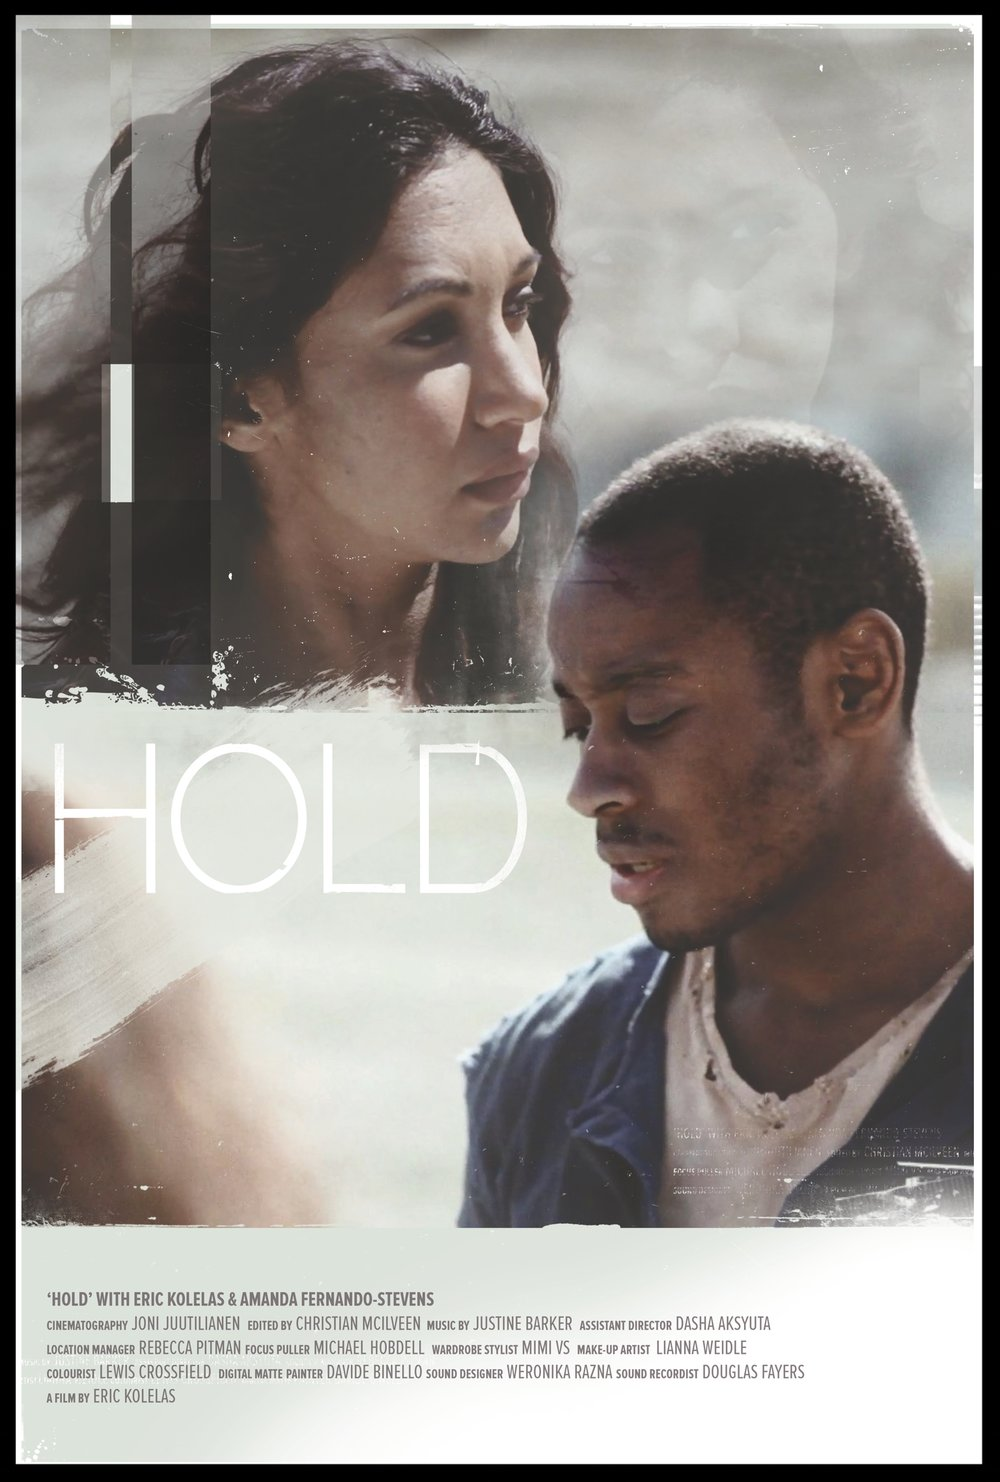 HOLD  7mins |Drama/Sci-Fi | UK  Stuck in his endless loneliness, a man wanders in a post-apocalyptic world... Only to discover he is not alone.